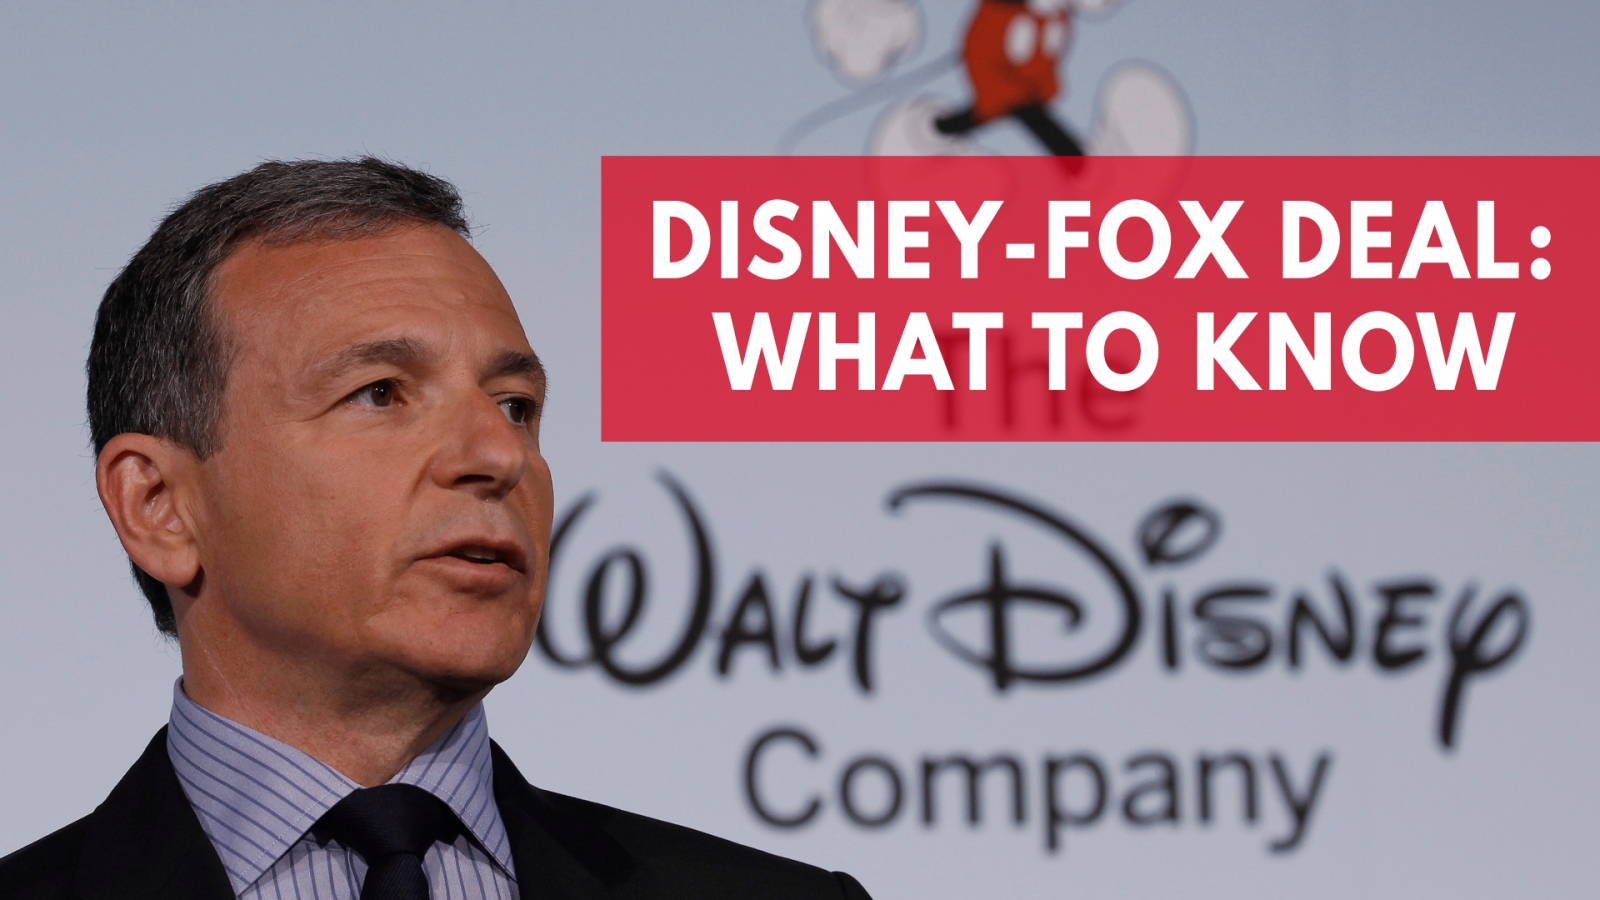 Disney-Fox Deal: What to know about the massive merger